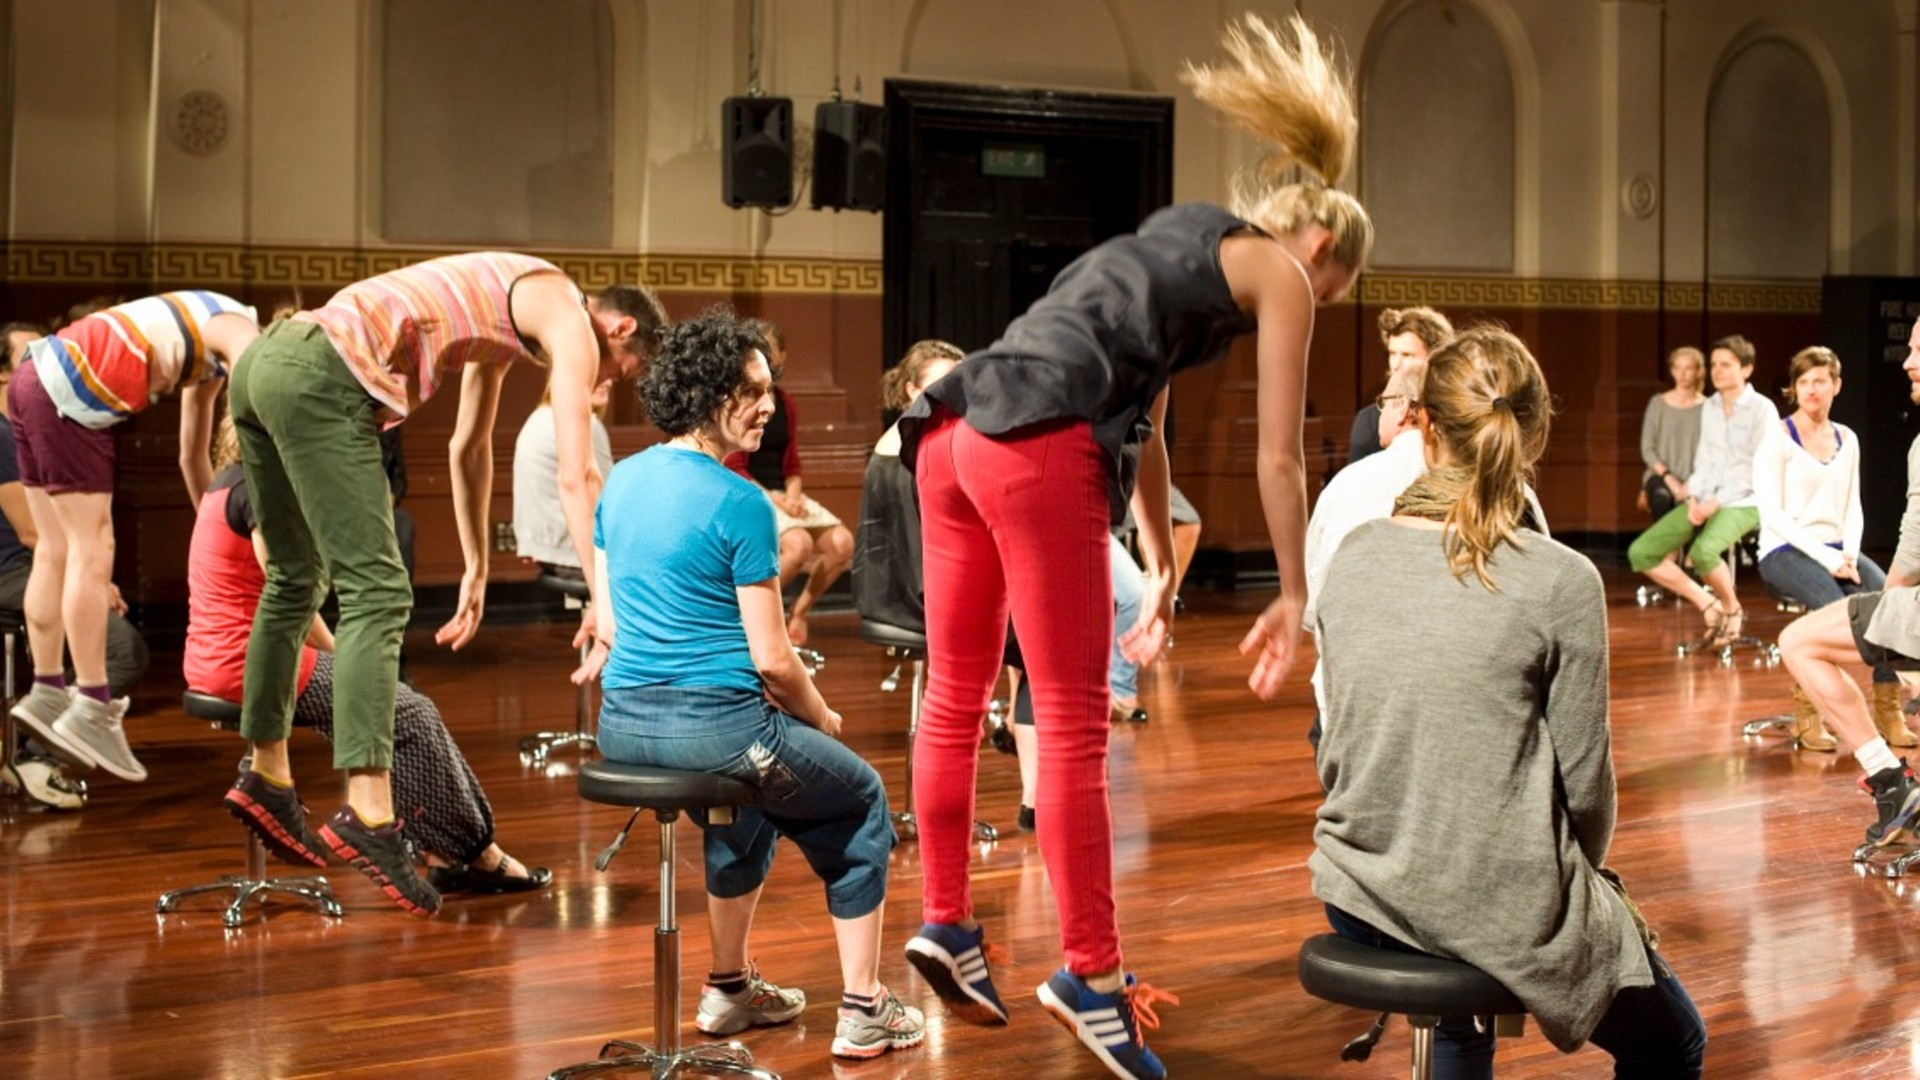 Dancers dressed in bright everyday clothes jump leaning forwards with arms hanging down interspersed with people watching them sitting on round stools in a large bright hall with shiny wooden floor